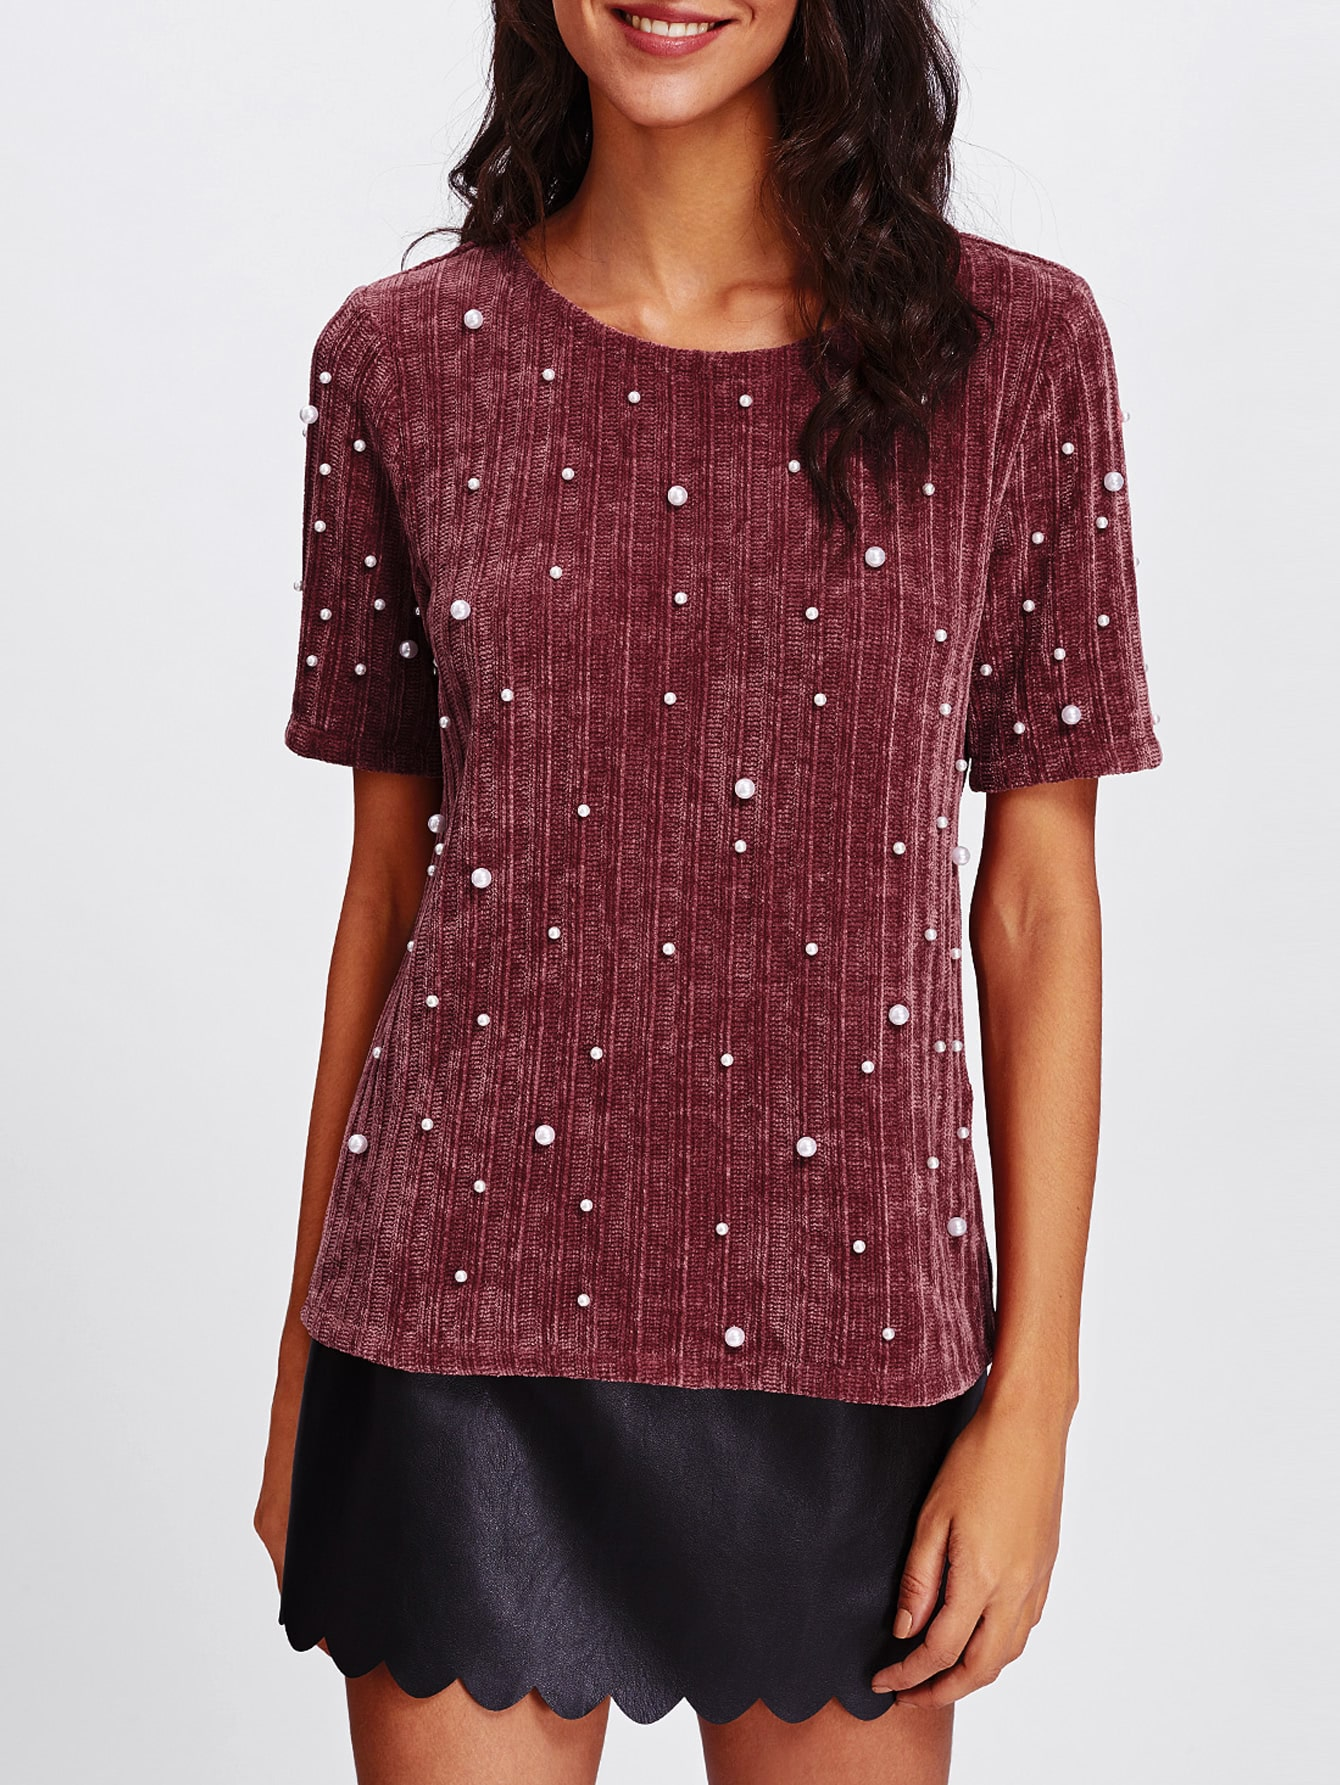 Pearl Embellished Ribbed Knit Tee tee171019703